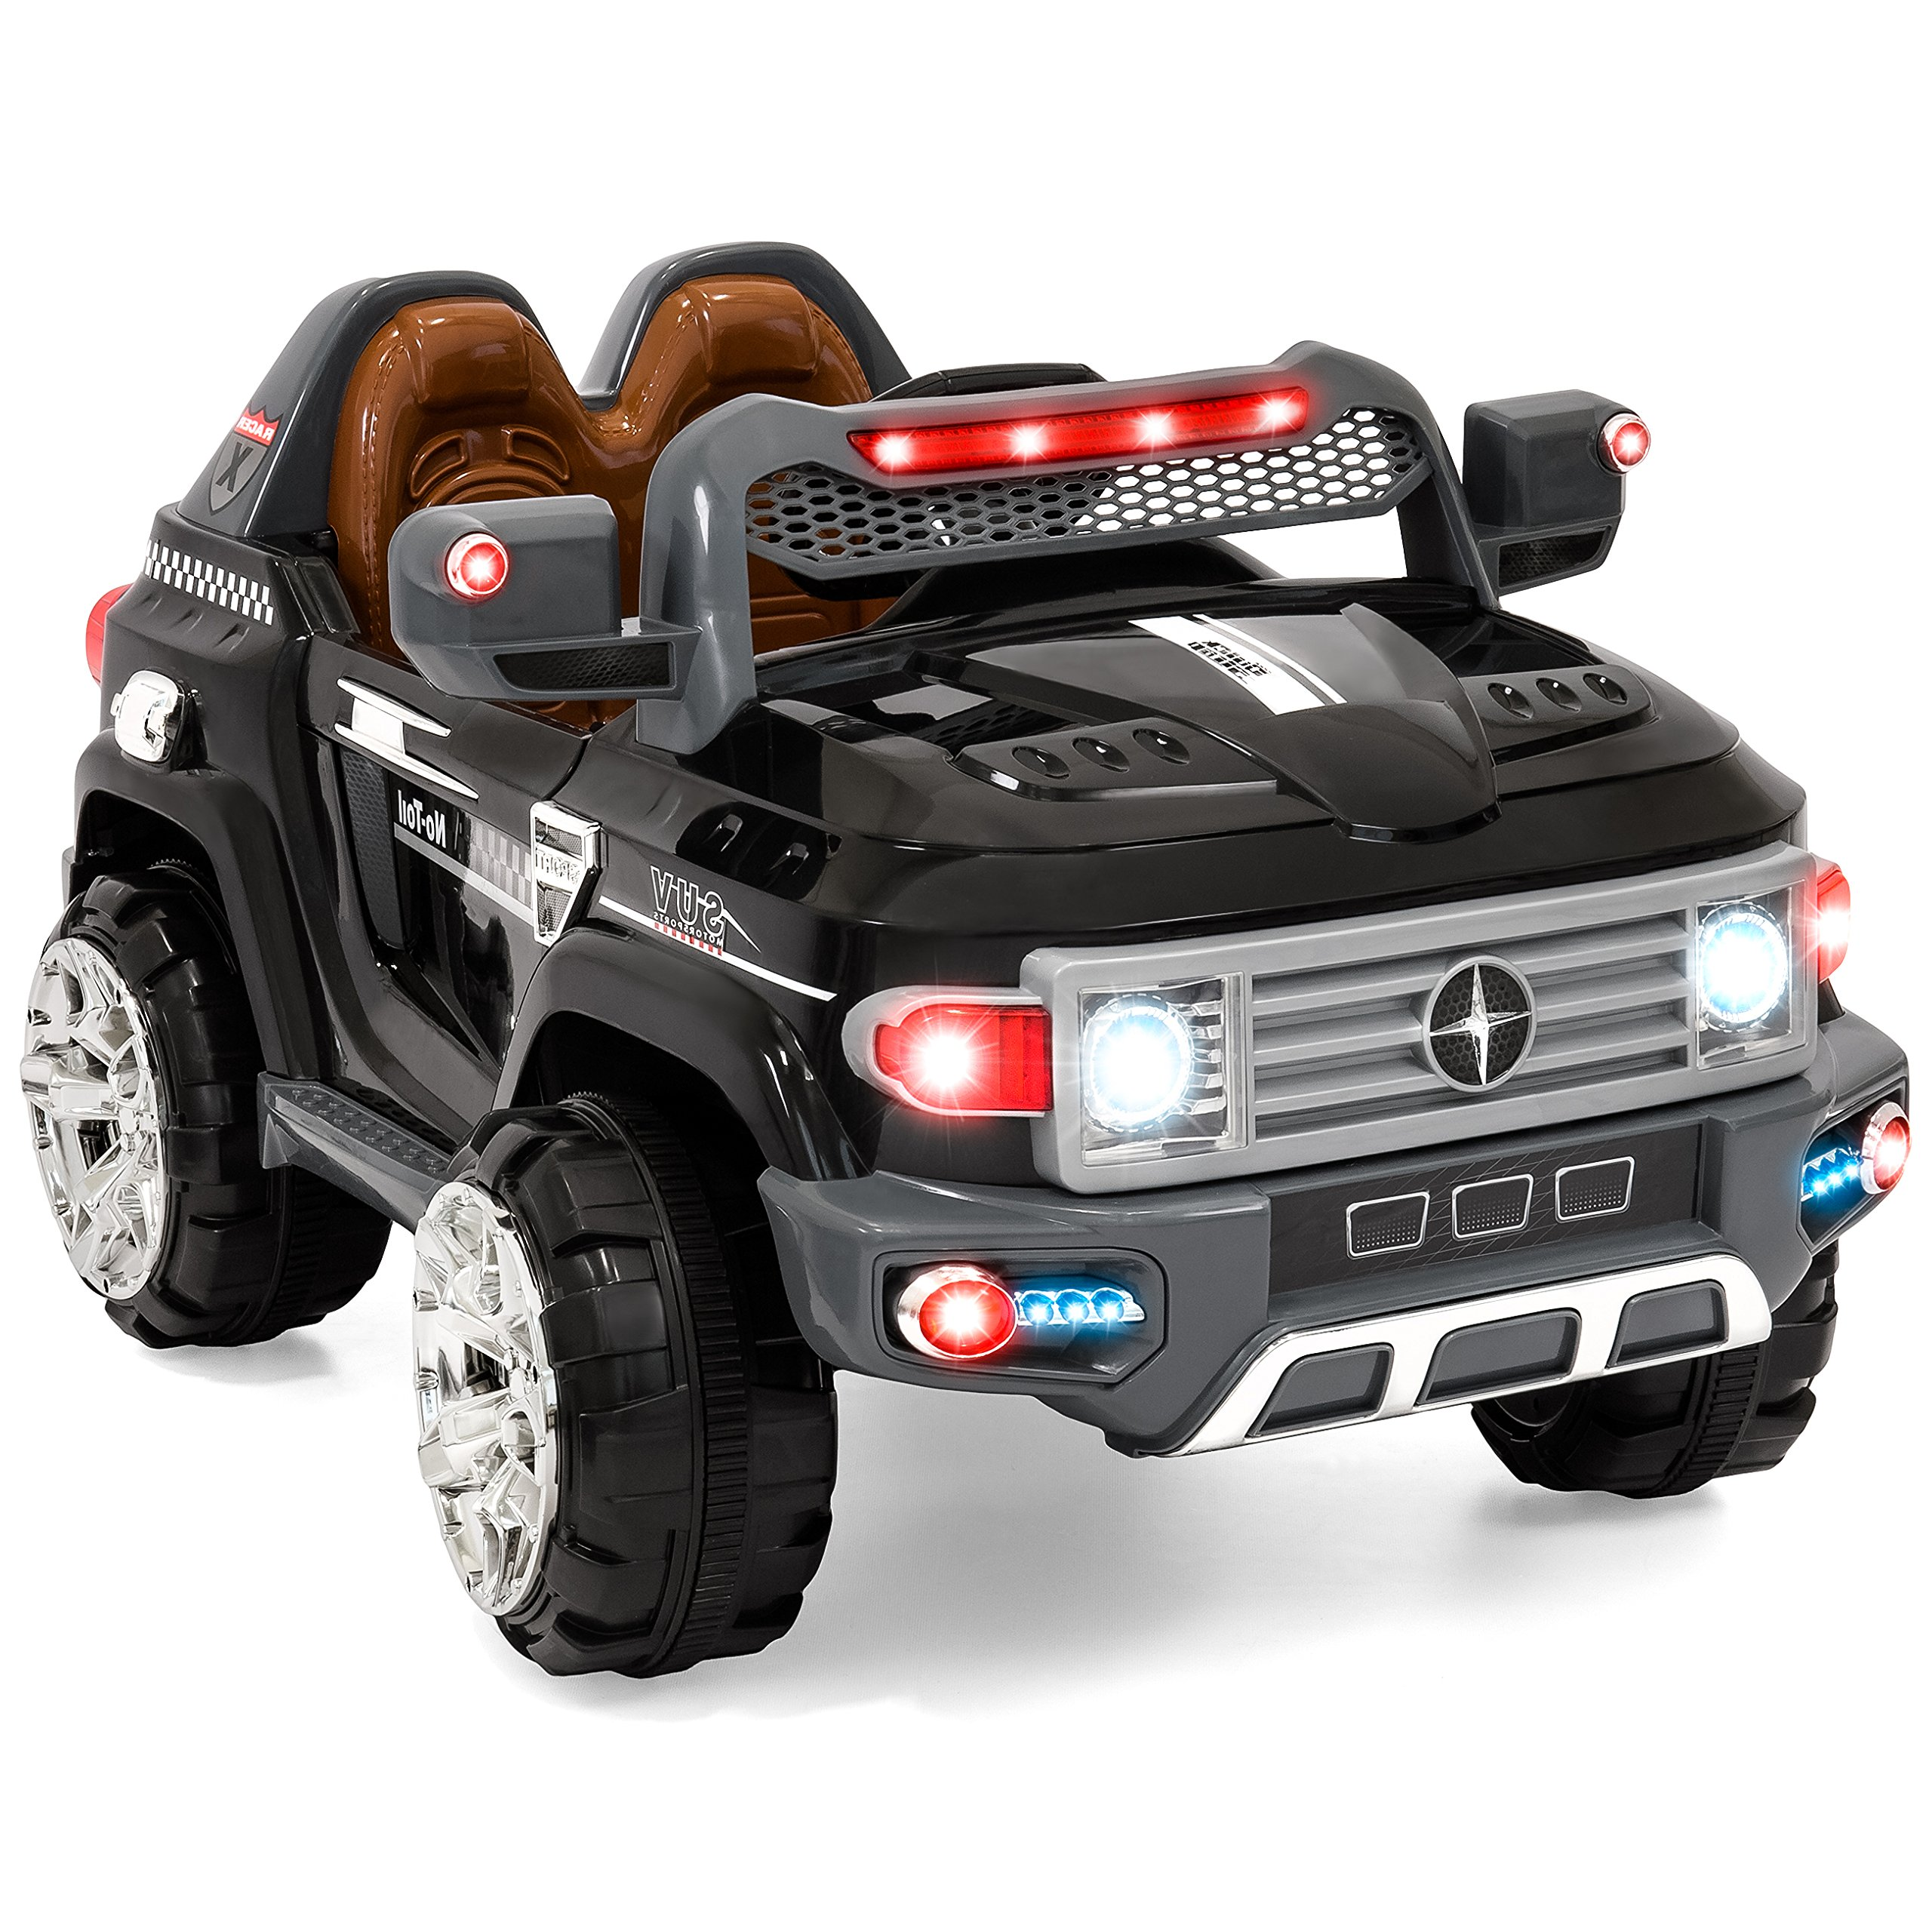 Best Choice Products Kids 12V MP3 Truck Car with LED Lights, AUX & Music, Black by Best Choice Products